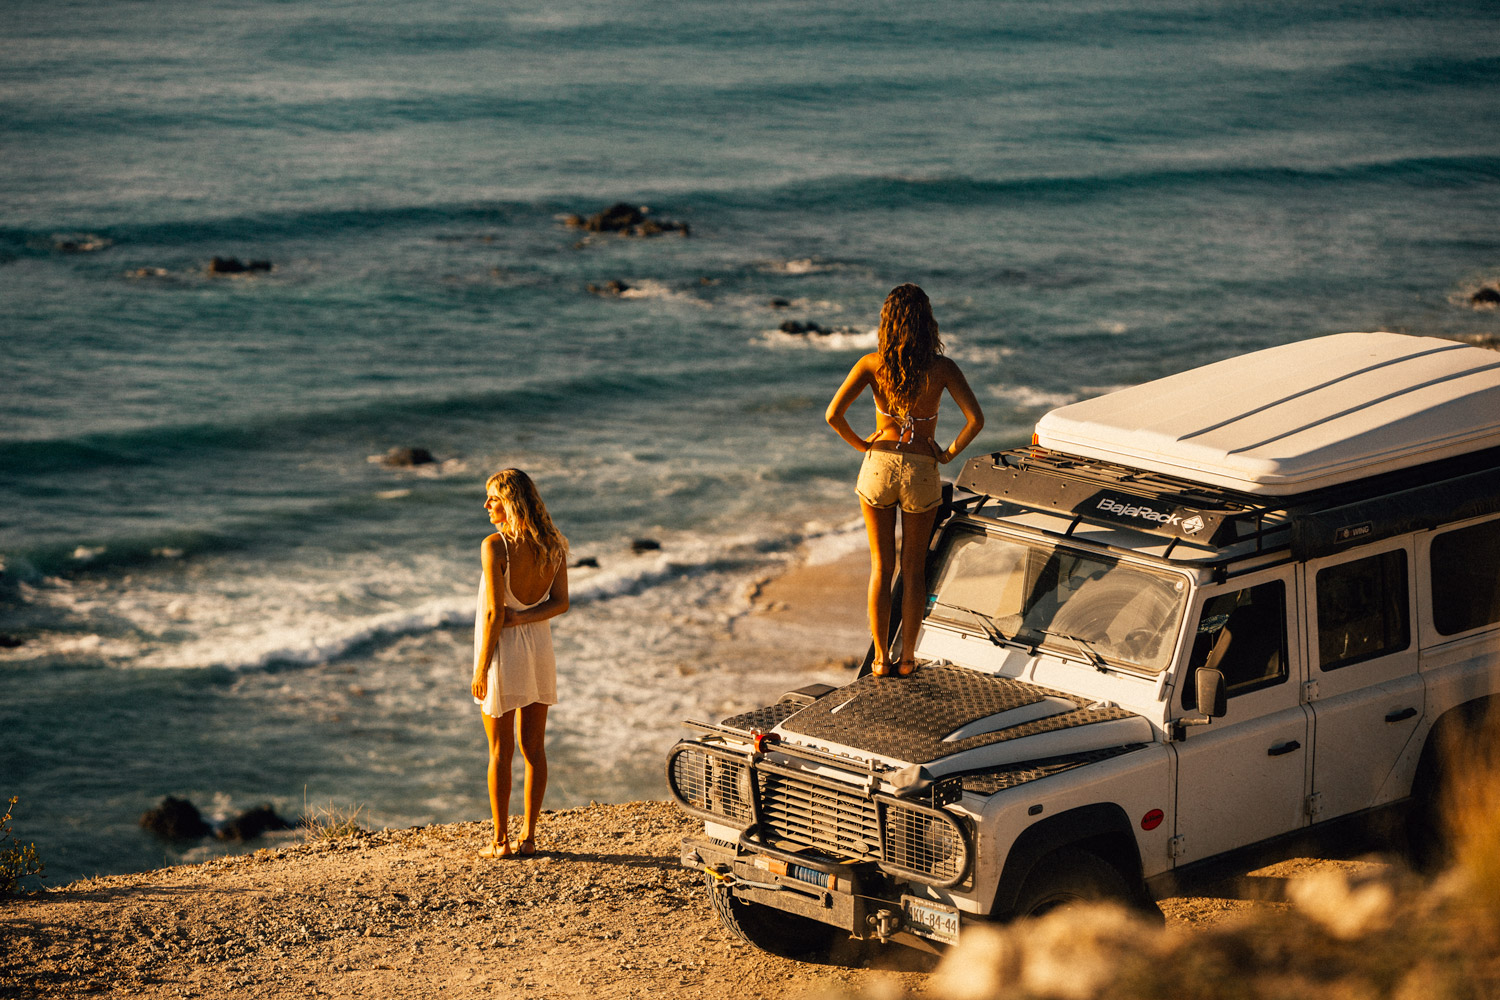 Road tripping through Baja is an adventure into the unknown with the